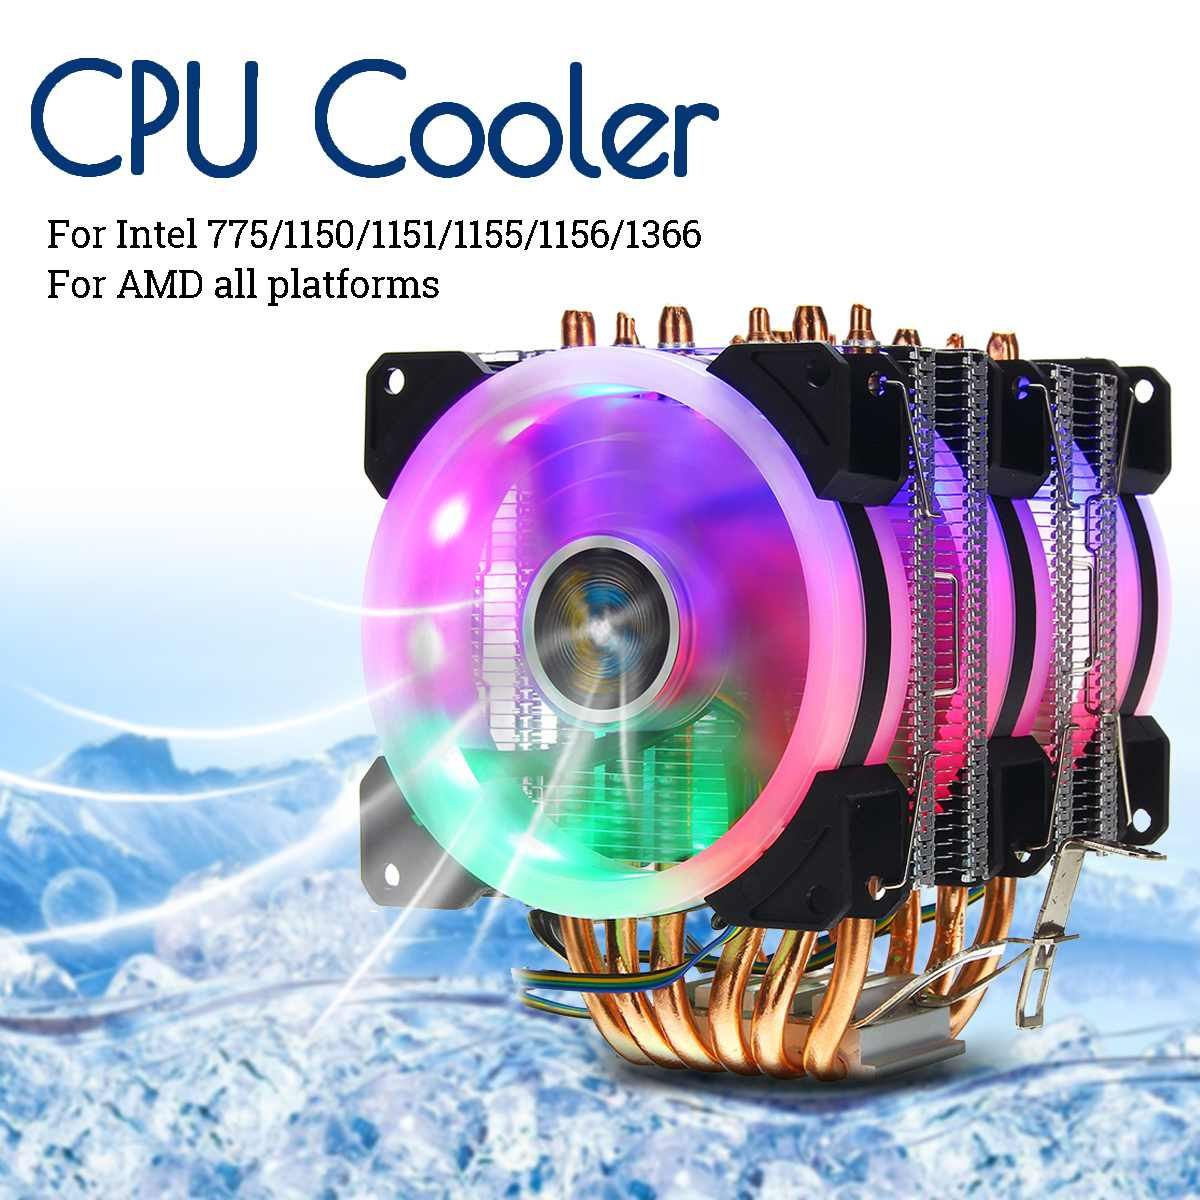 <font><b>CPU</b></font> Cooler 6 Heatpipe RGB LED <font><b>Fan</b></font> Quiet 4pin <font><b>CPU</b></font> <font><b>Fan</b></font> Cooling Heatsink <font><b>CPU</b></font> Cooling for Intel <font><b>775</b></font>/1150/1151/1155/1156/1366 for AMD image